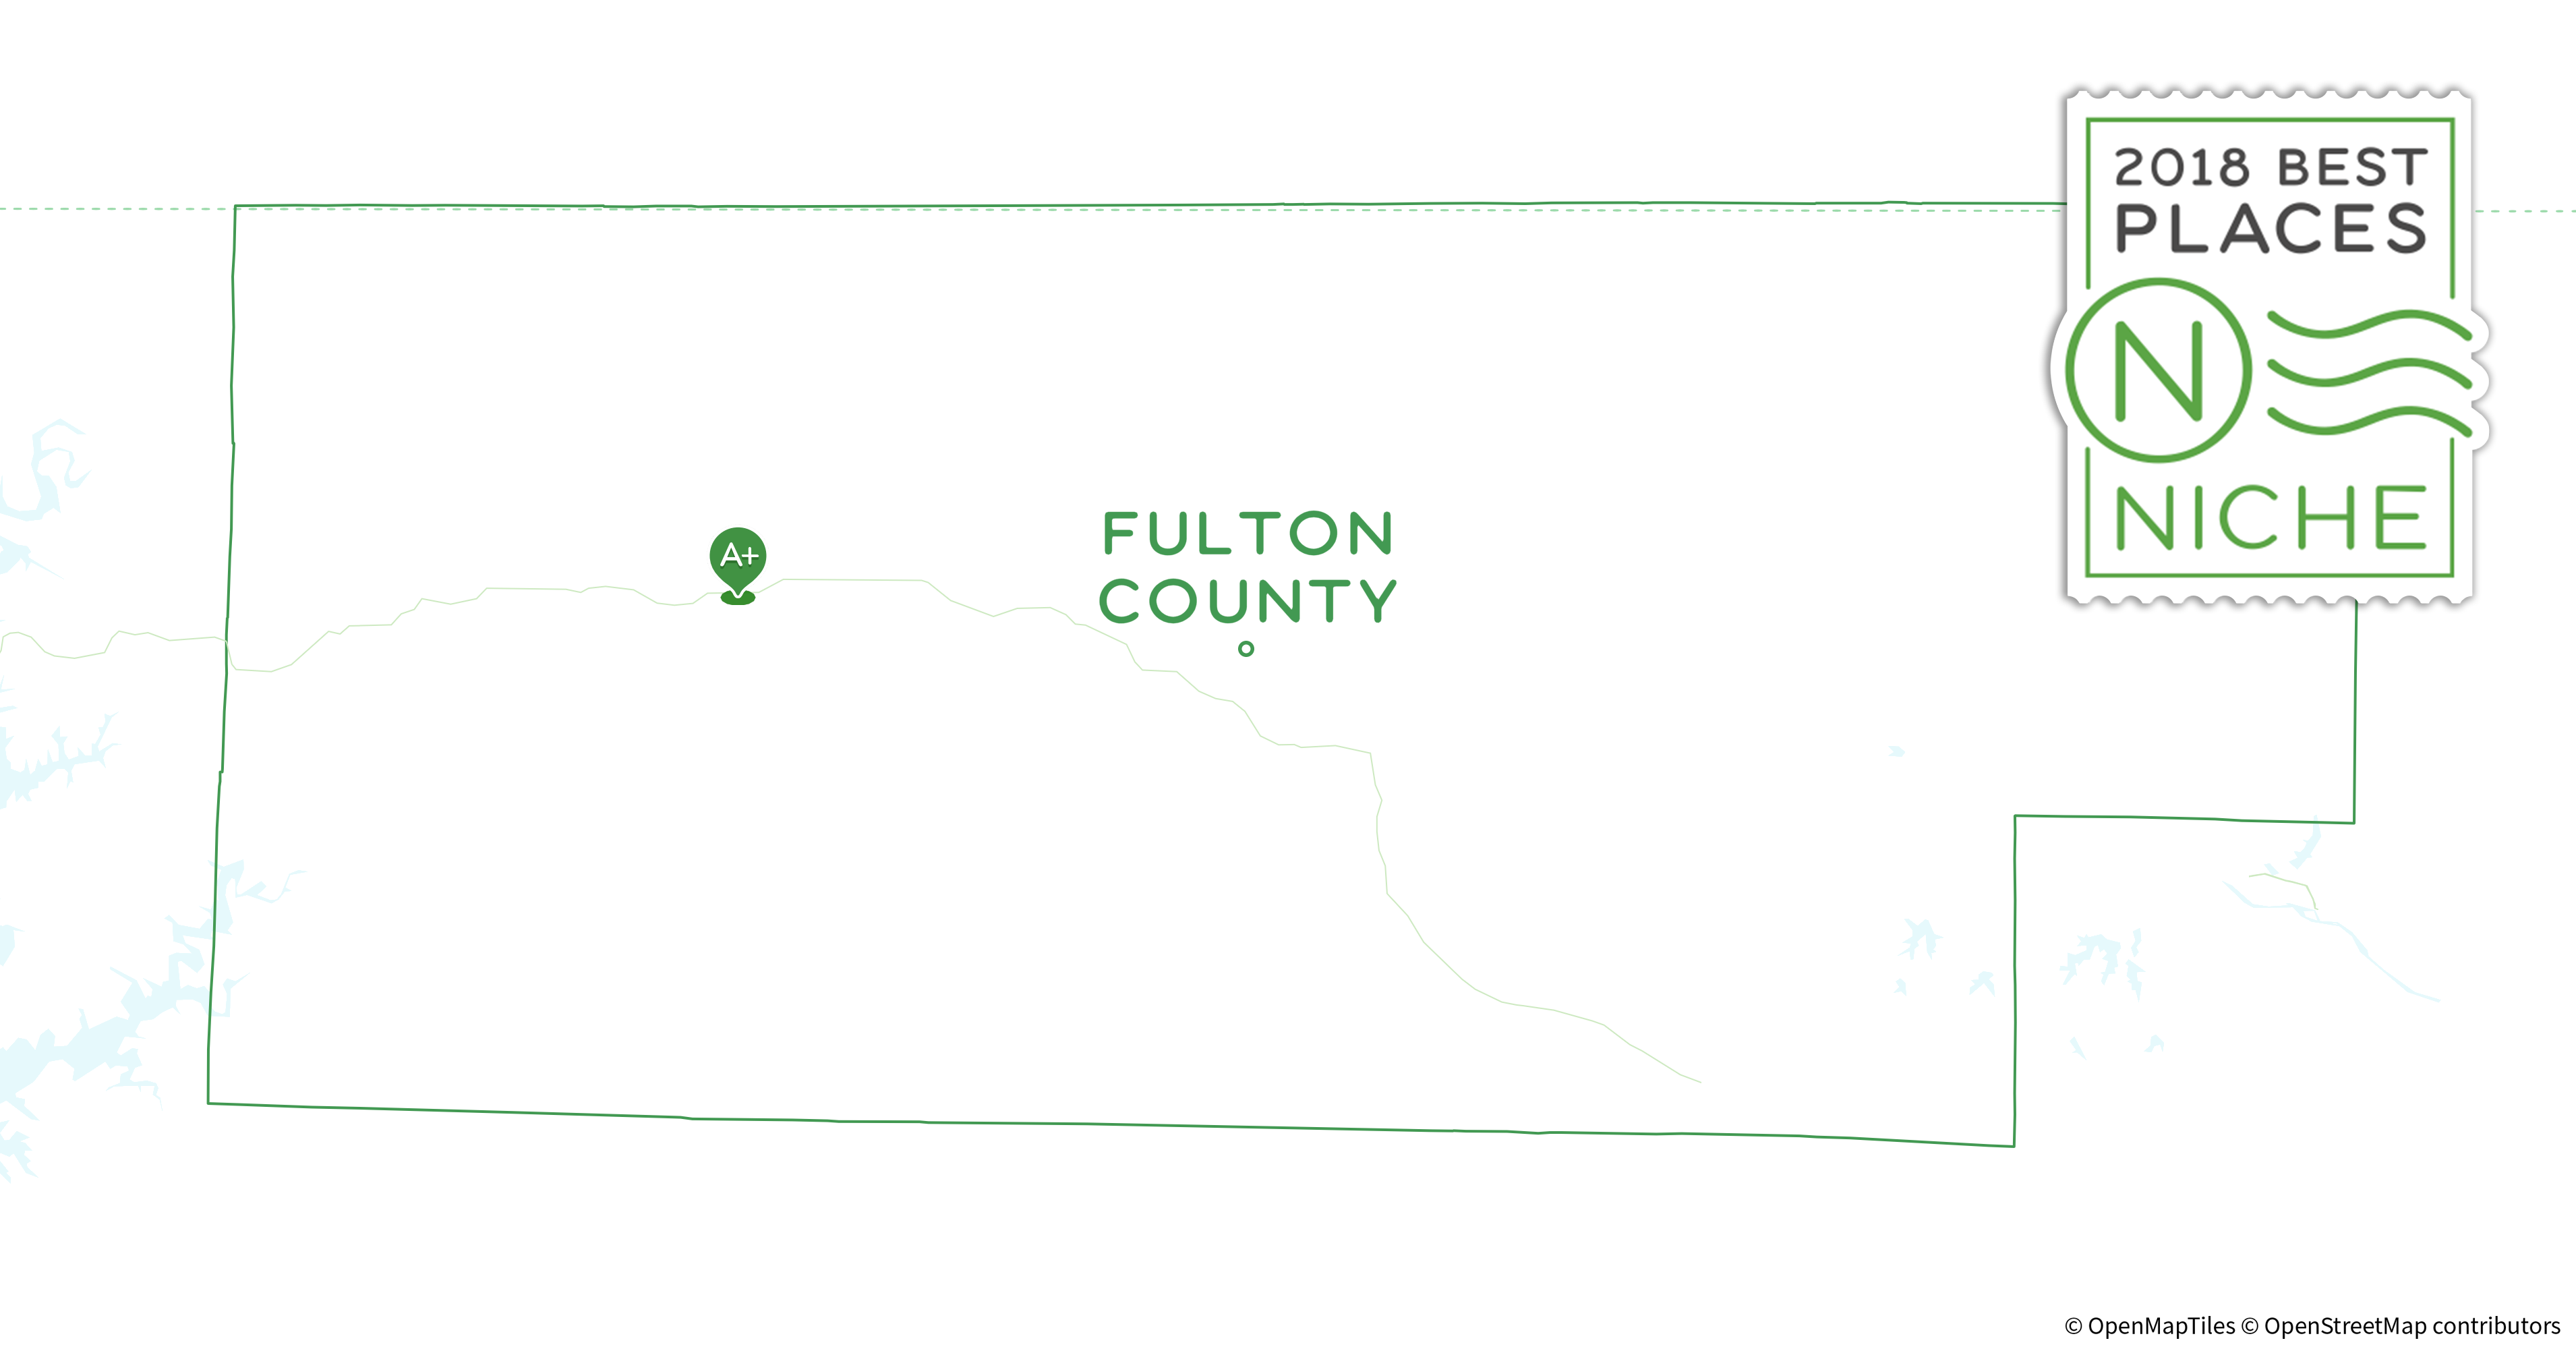 2018 Best Places to Live in Fulton County, AR - Niche